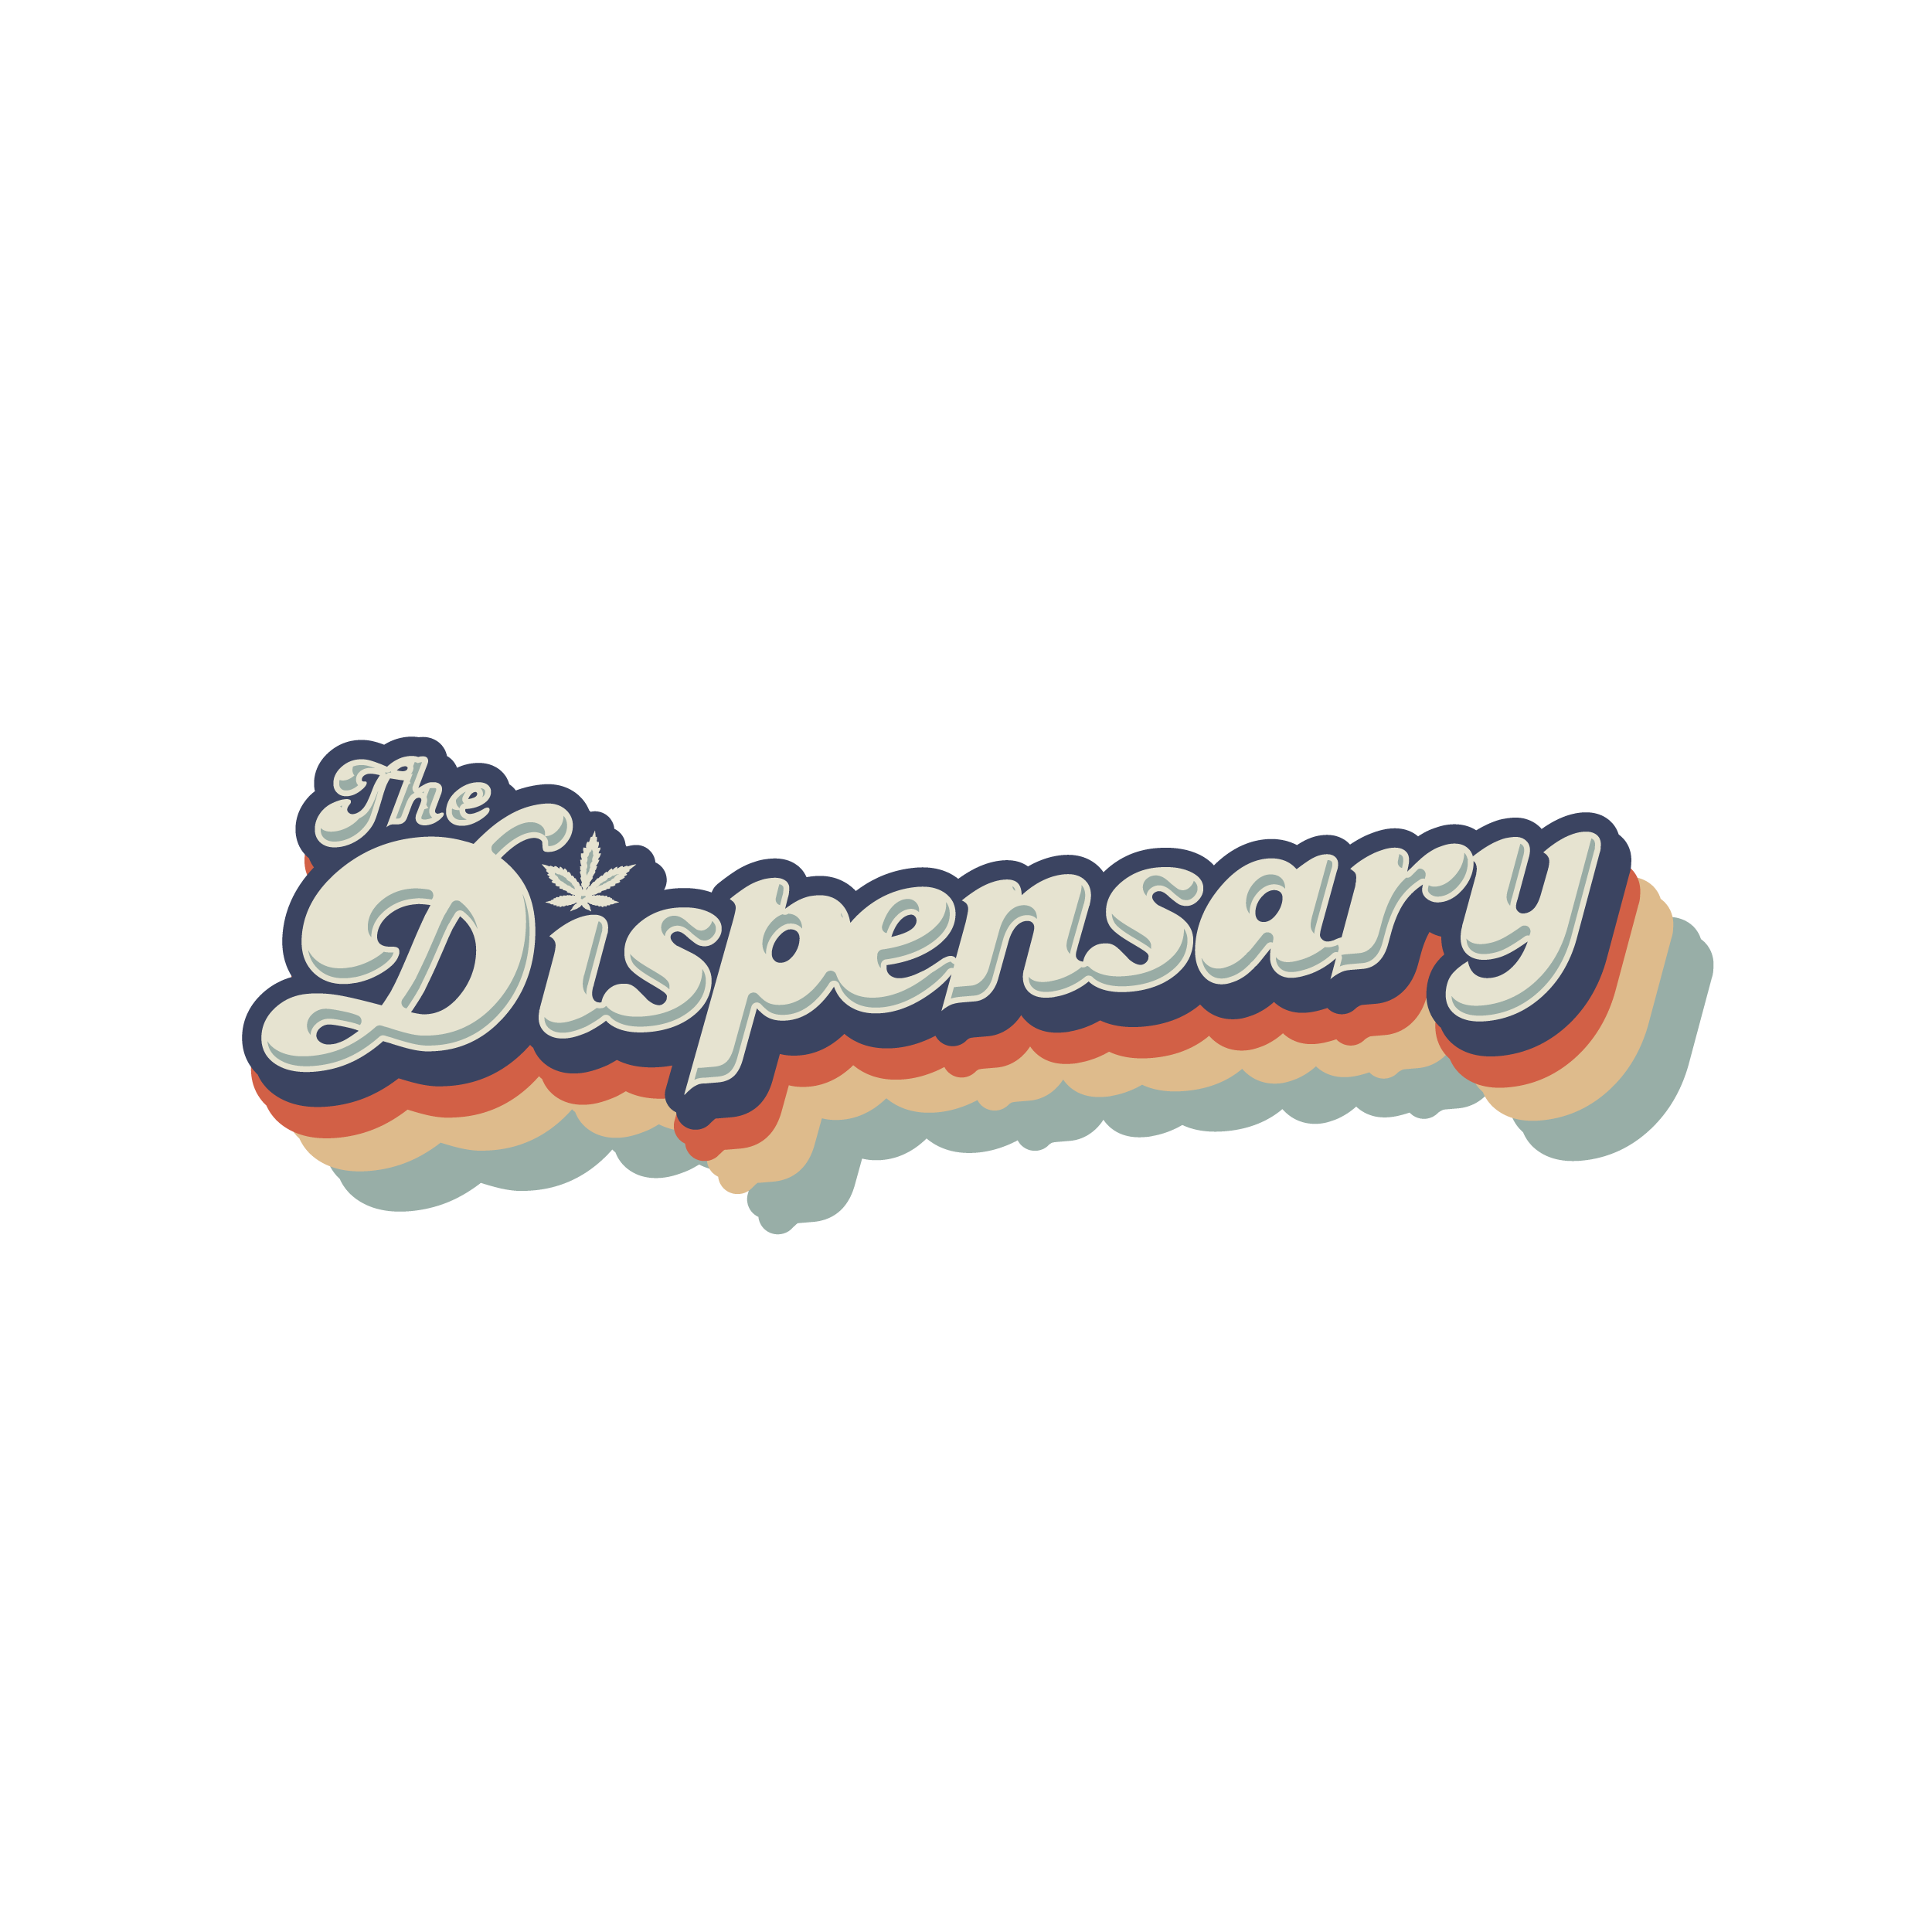 Looking for a groovy Logo for a top end Dispensary